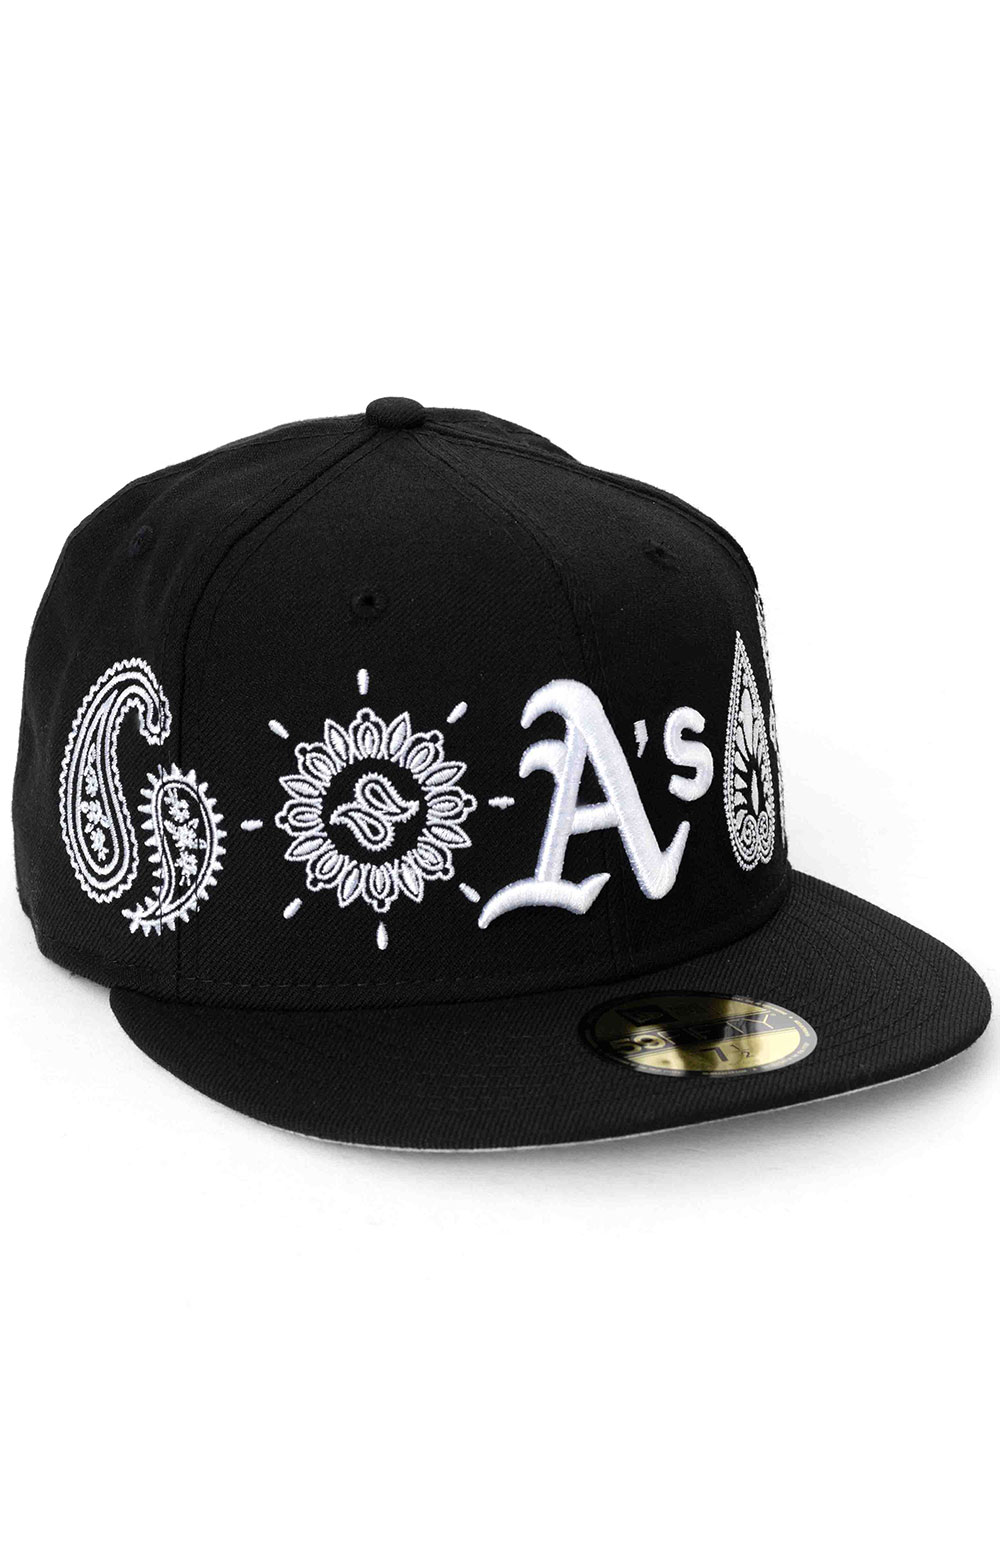 Oakland Athletics Paisley Elements 59Fifty Fitted Hat - Black  3